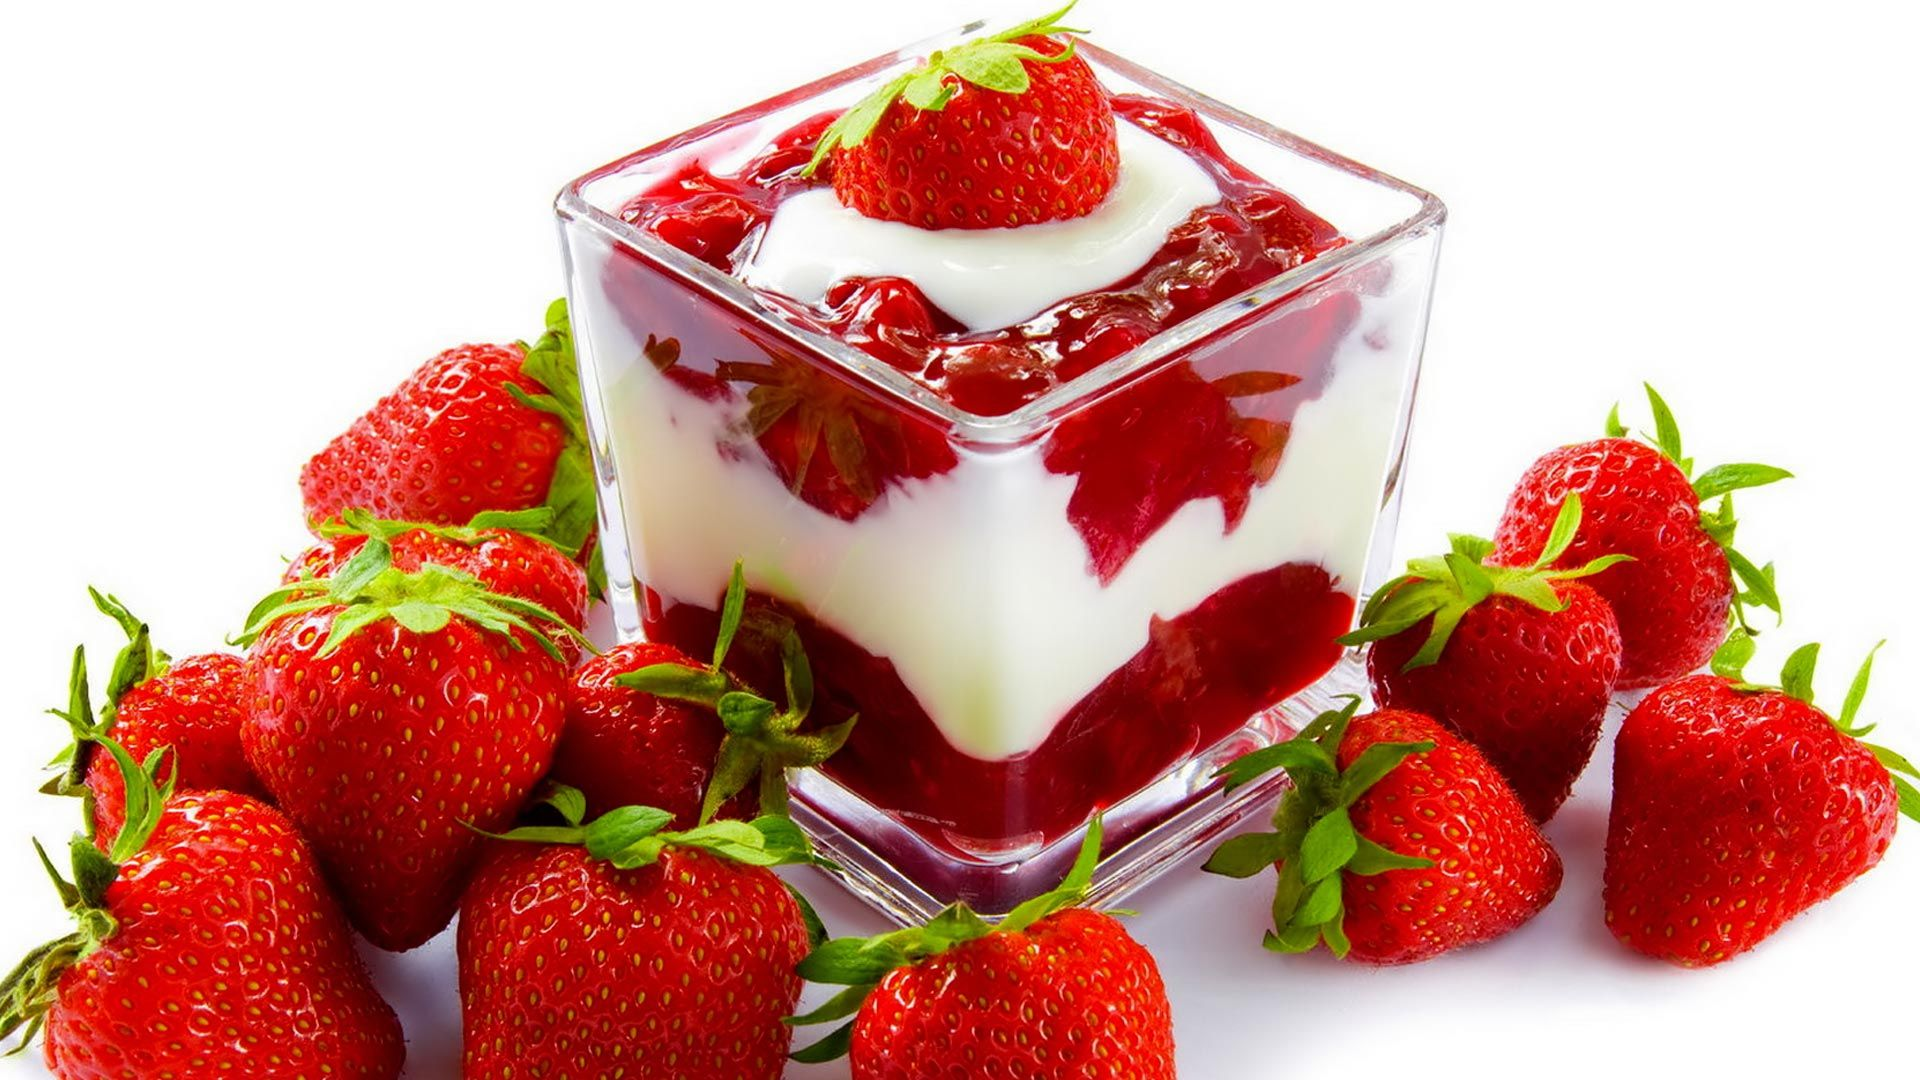 strawberry dessert with cream in a glass